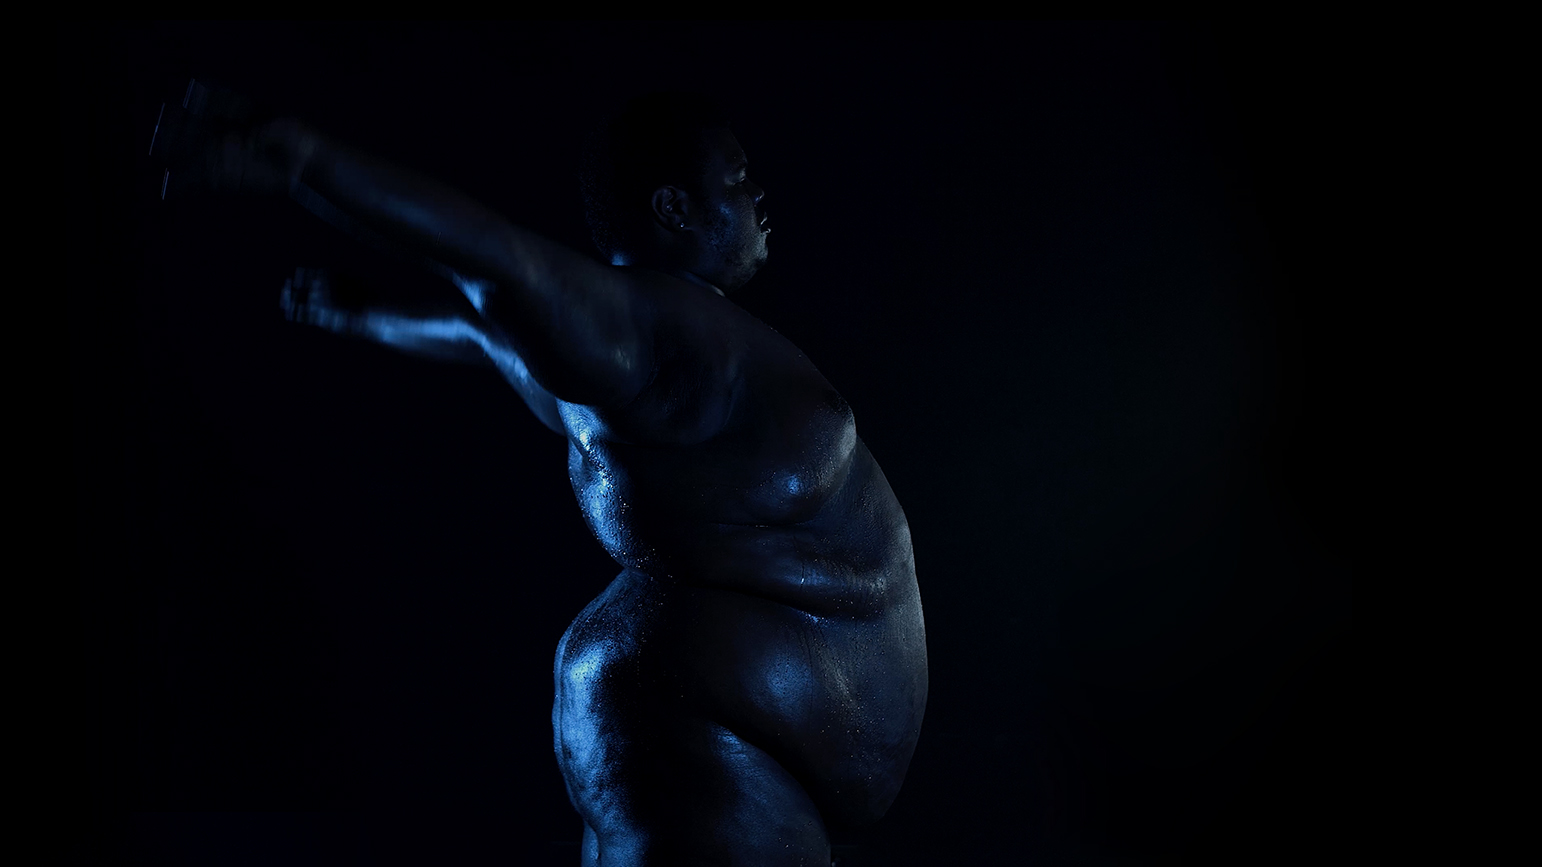 Video still of a nude figure in very low lighting from the side with arms reaching backward